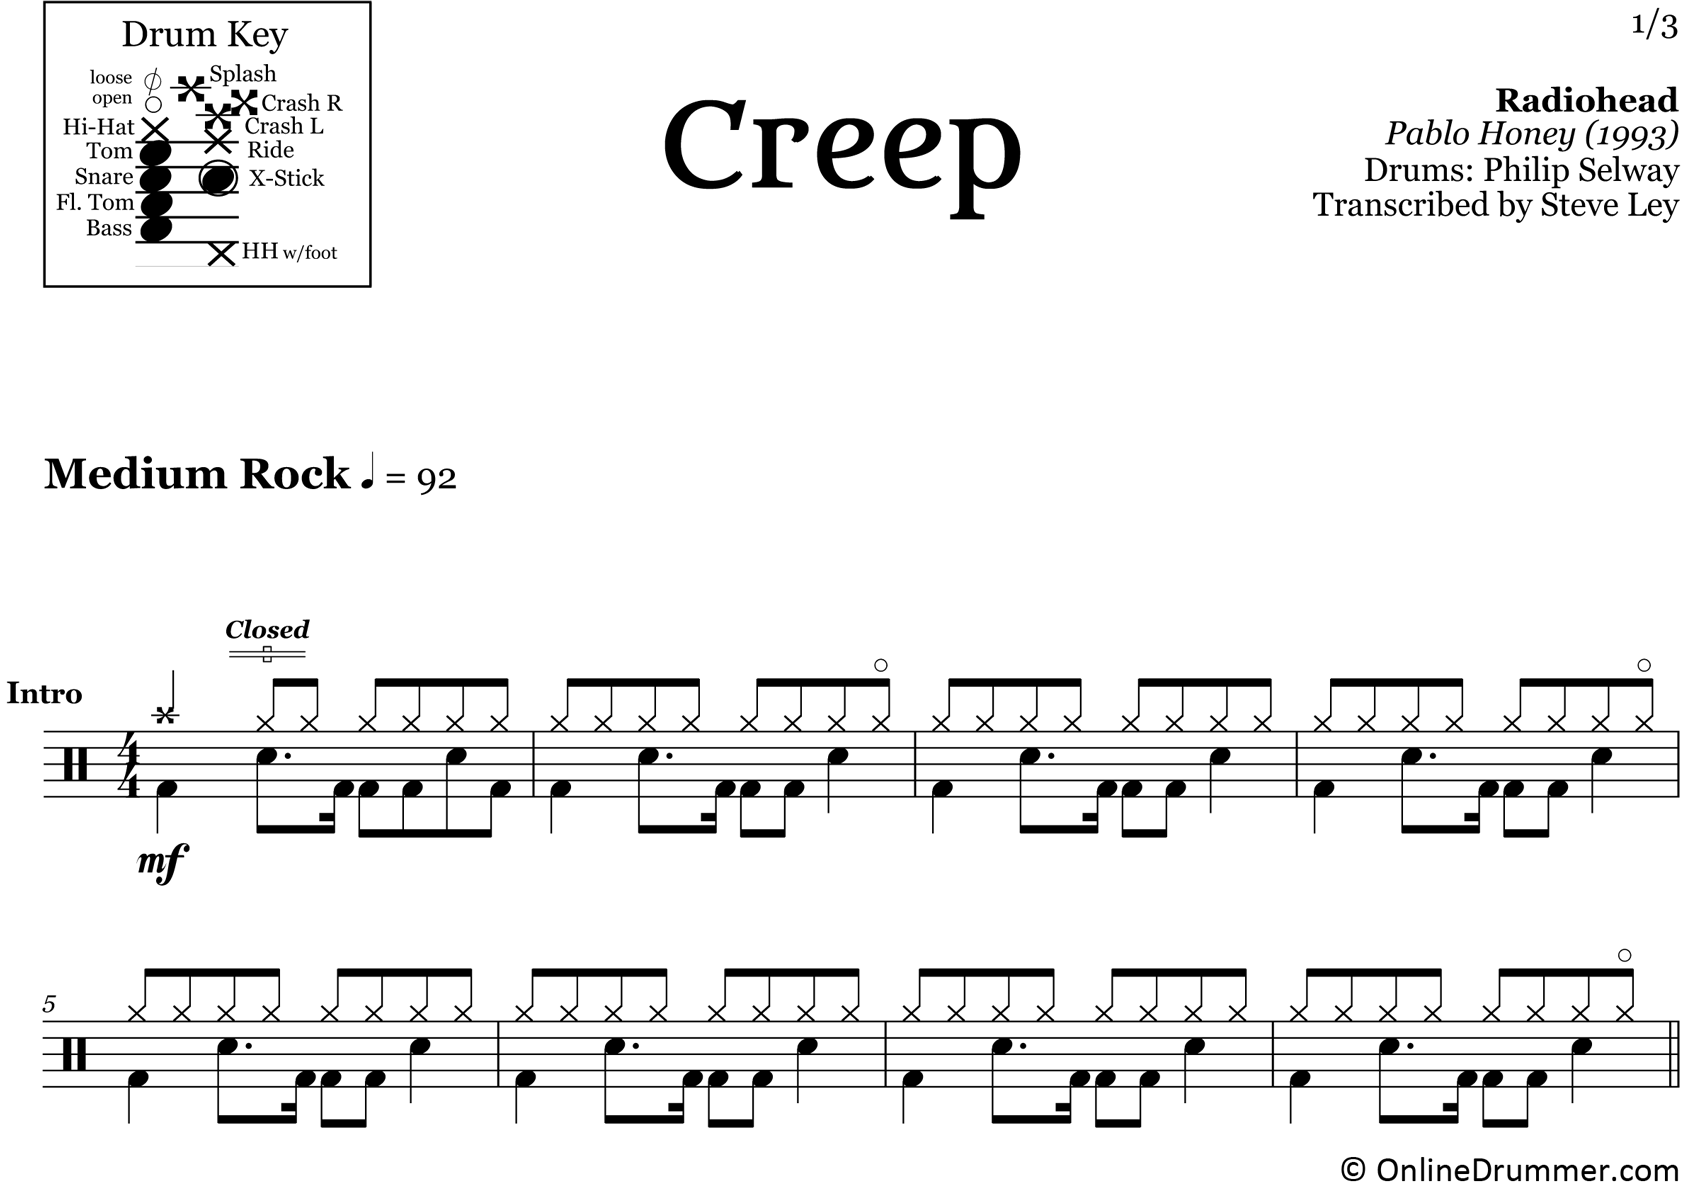 Creep - Radiohead - Drum Sheet Music